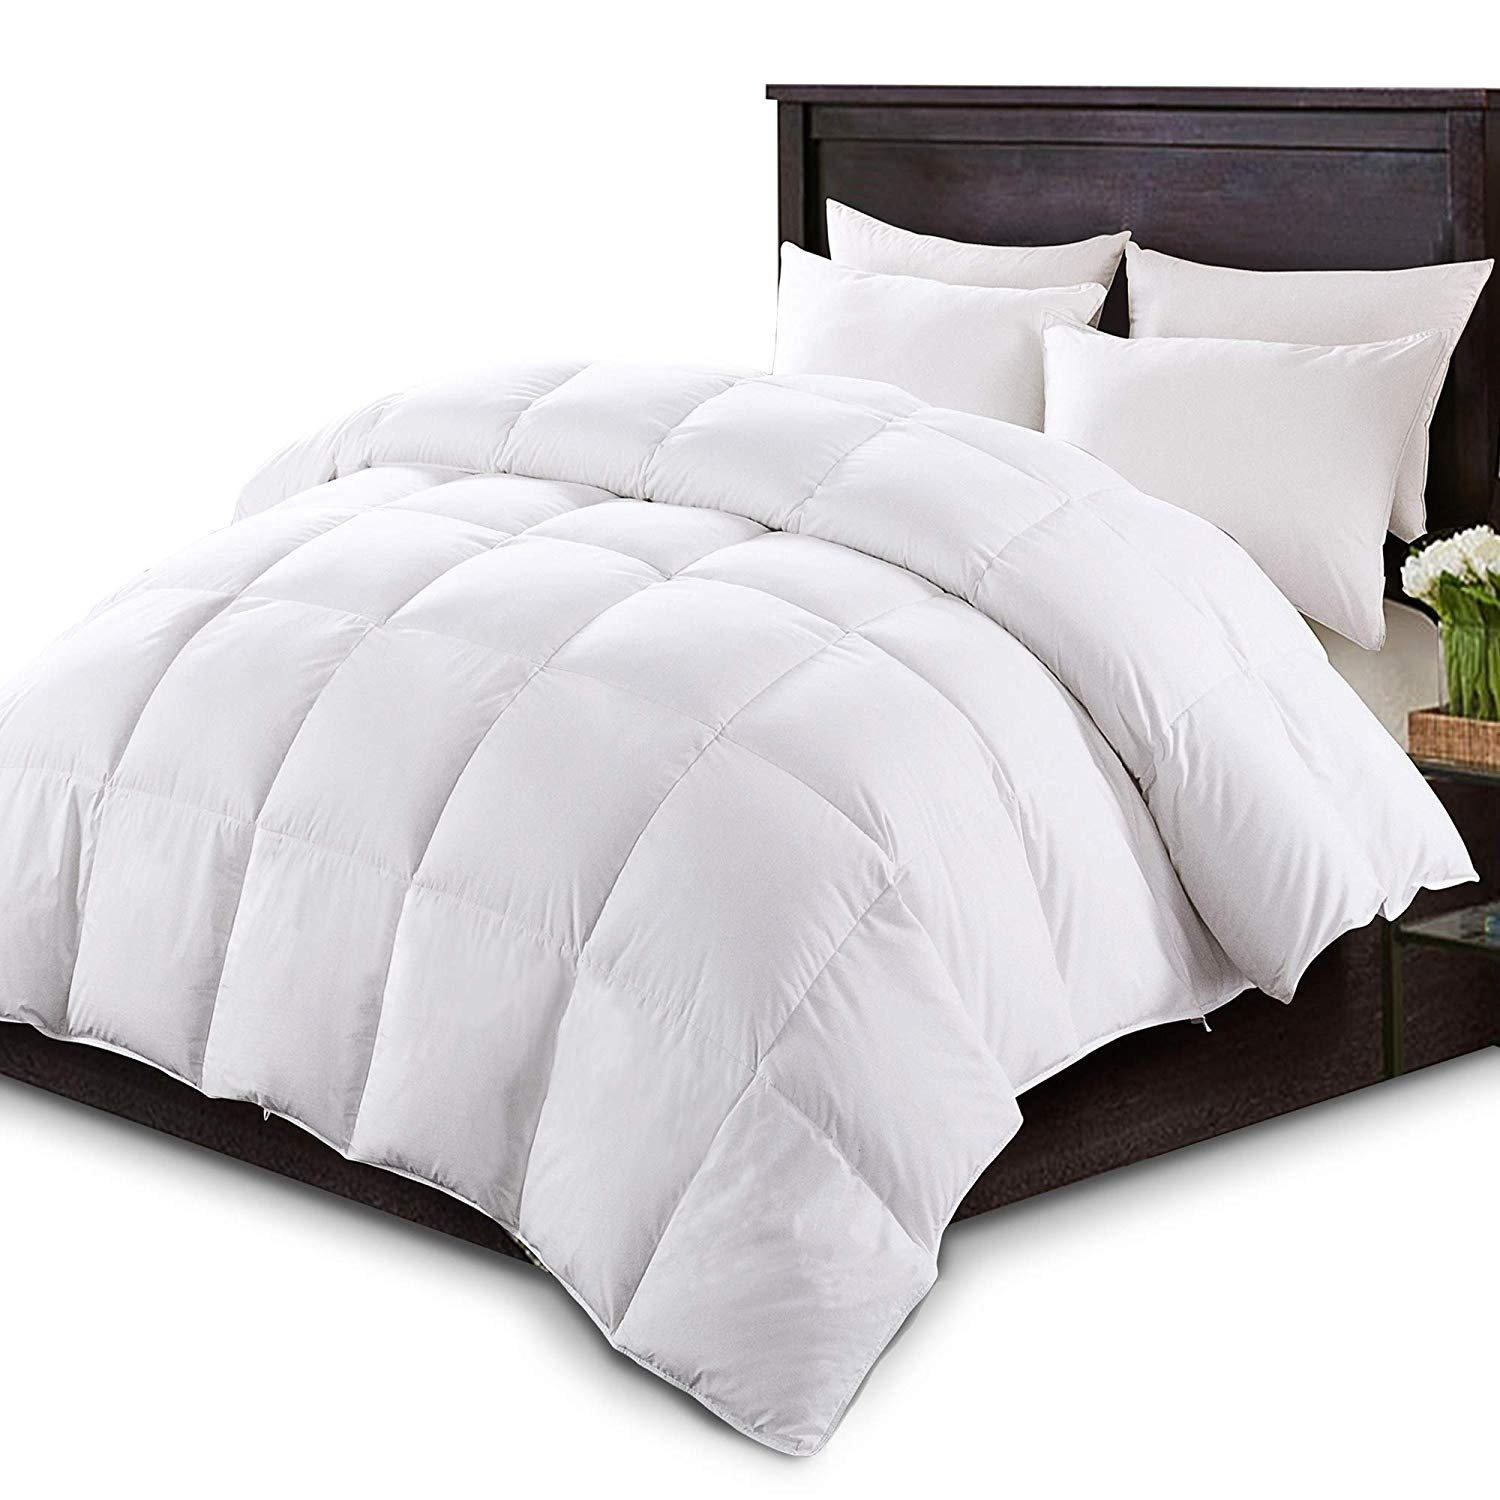 Kasentex White Down Comforter Duvet Insert With Tabs All Season